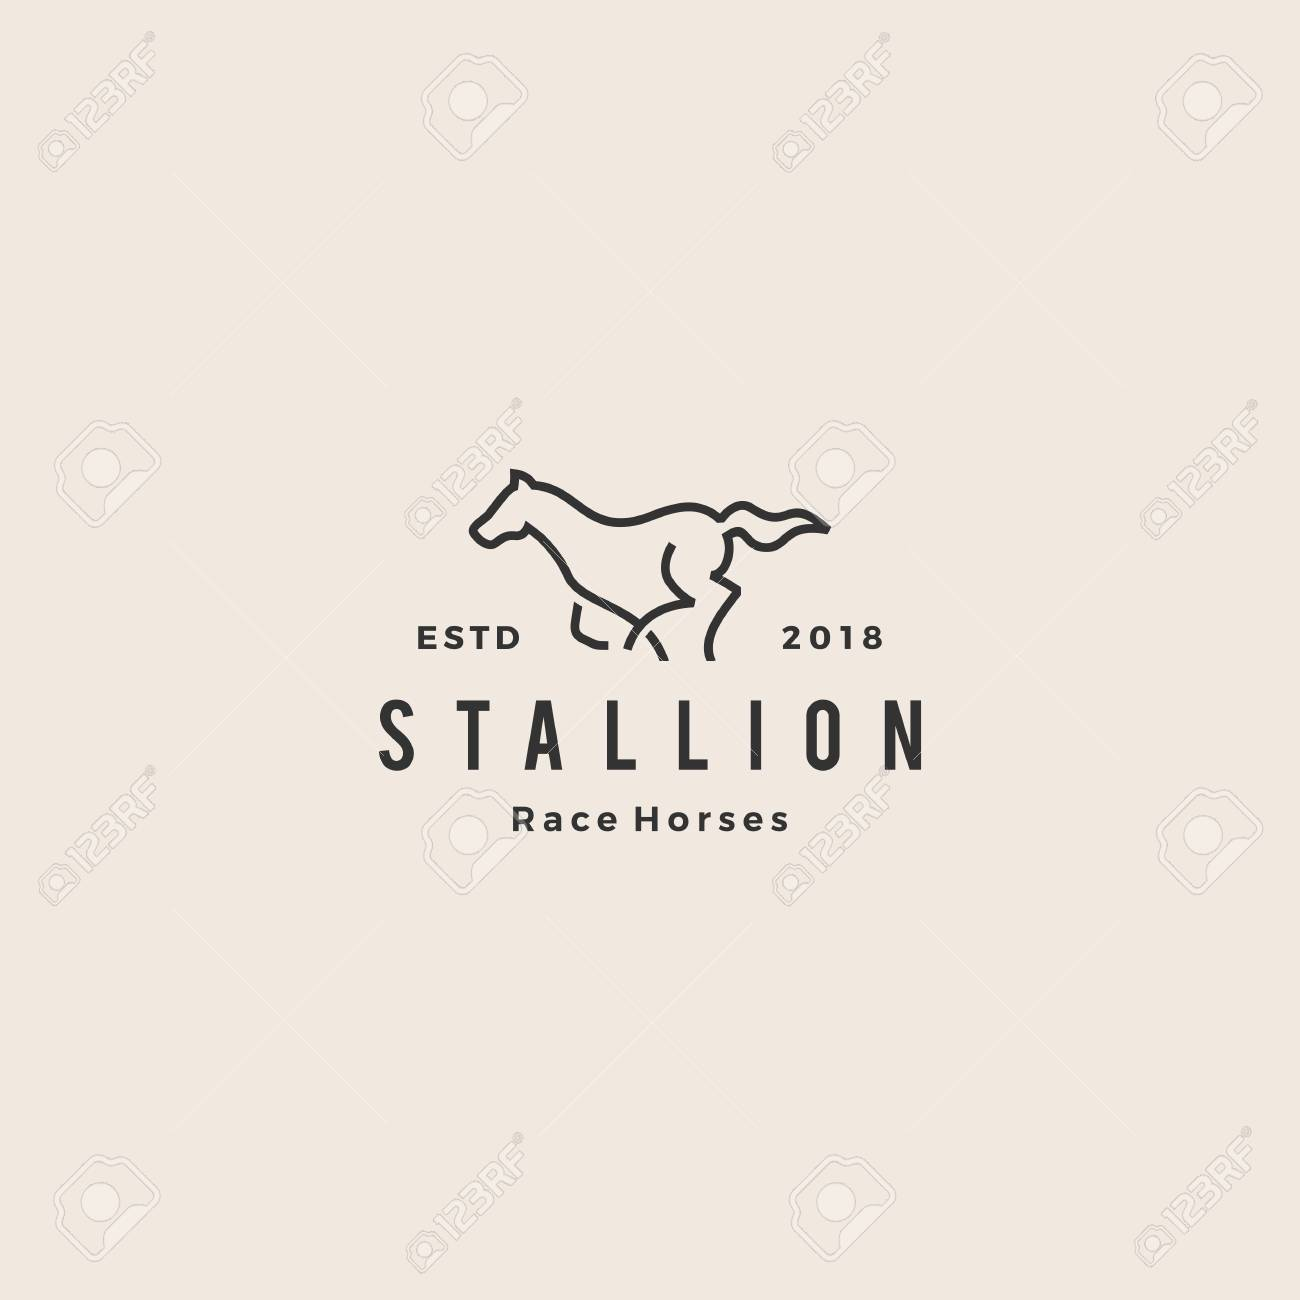 Stallion Horse Running Race Logo Hipster Vintage Line Outline Royalty Free Cliparts Vectors And Stock Illustration Image 107801530